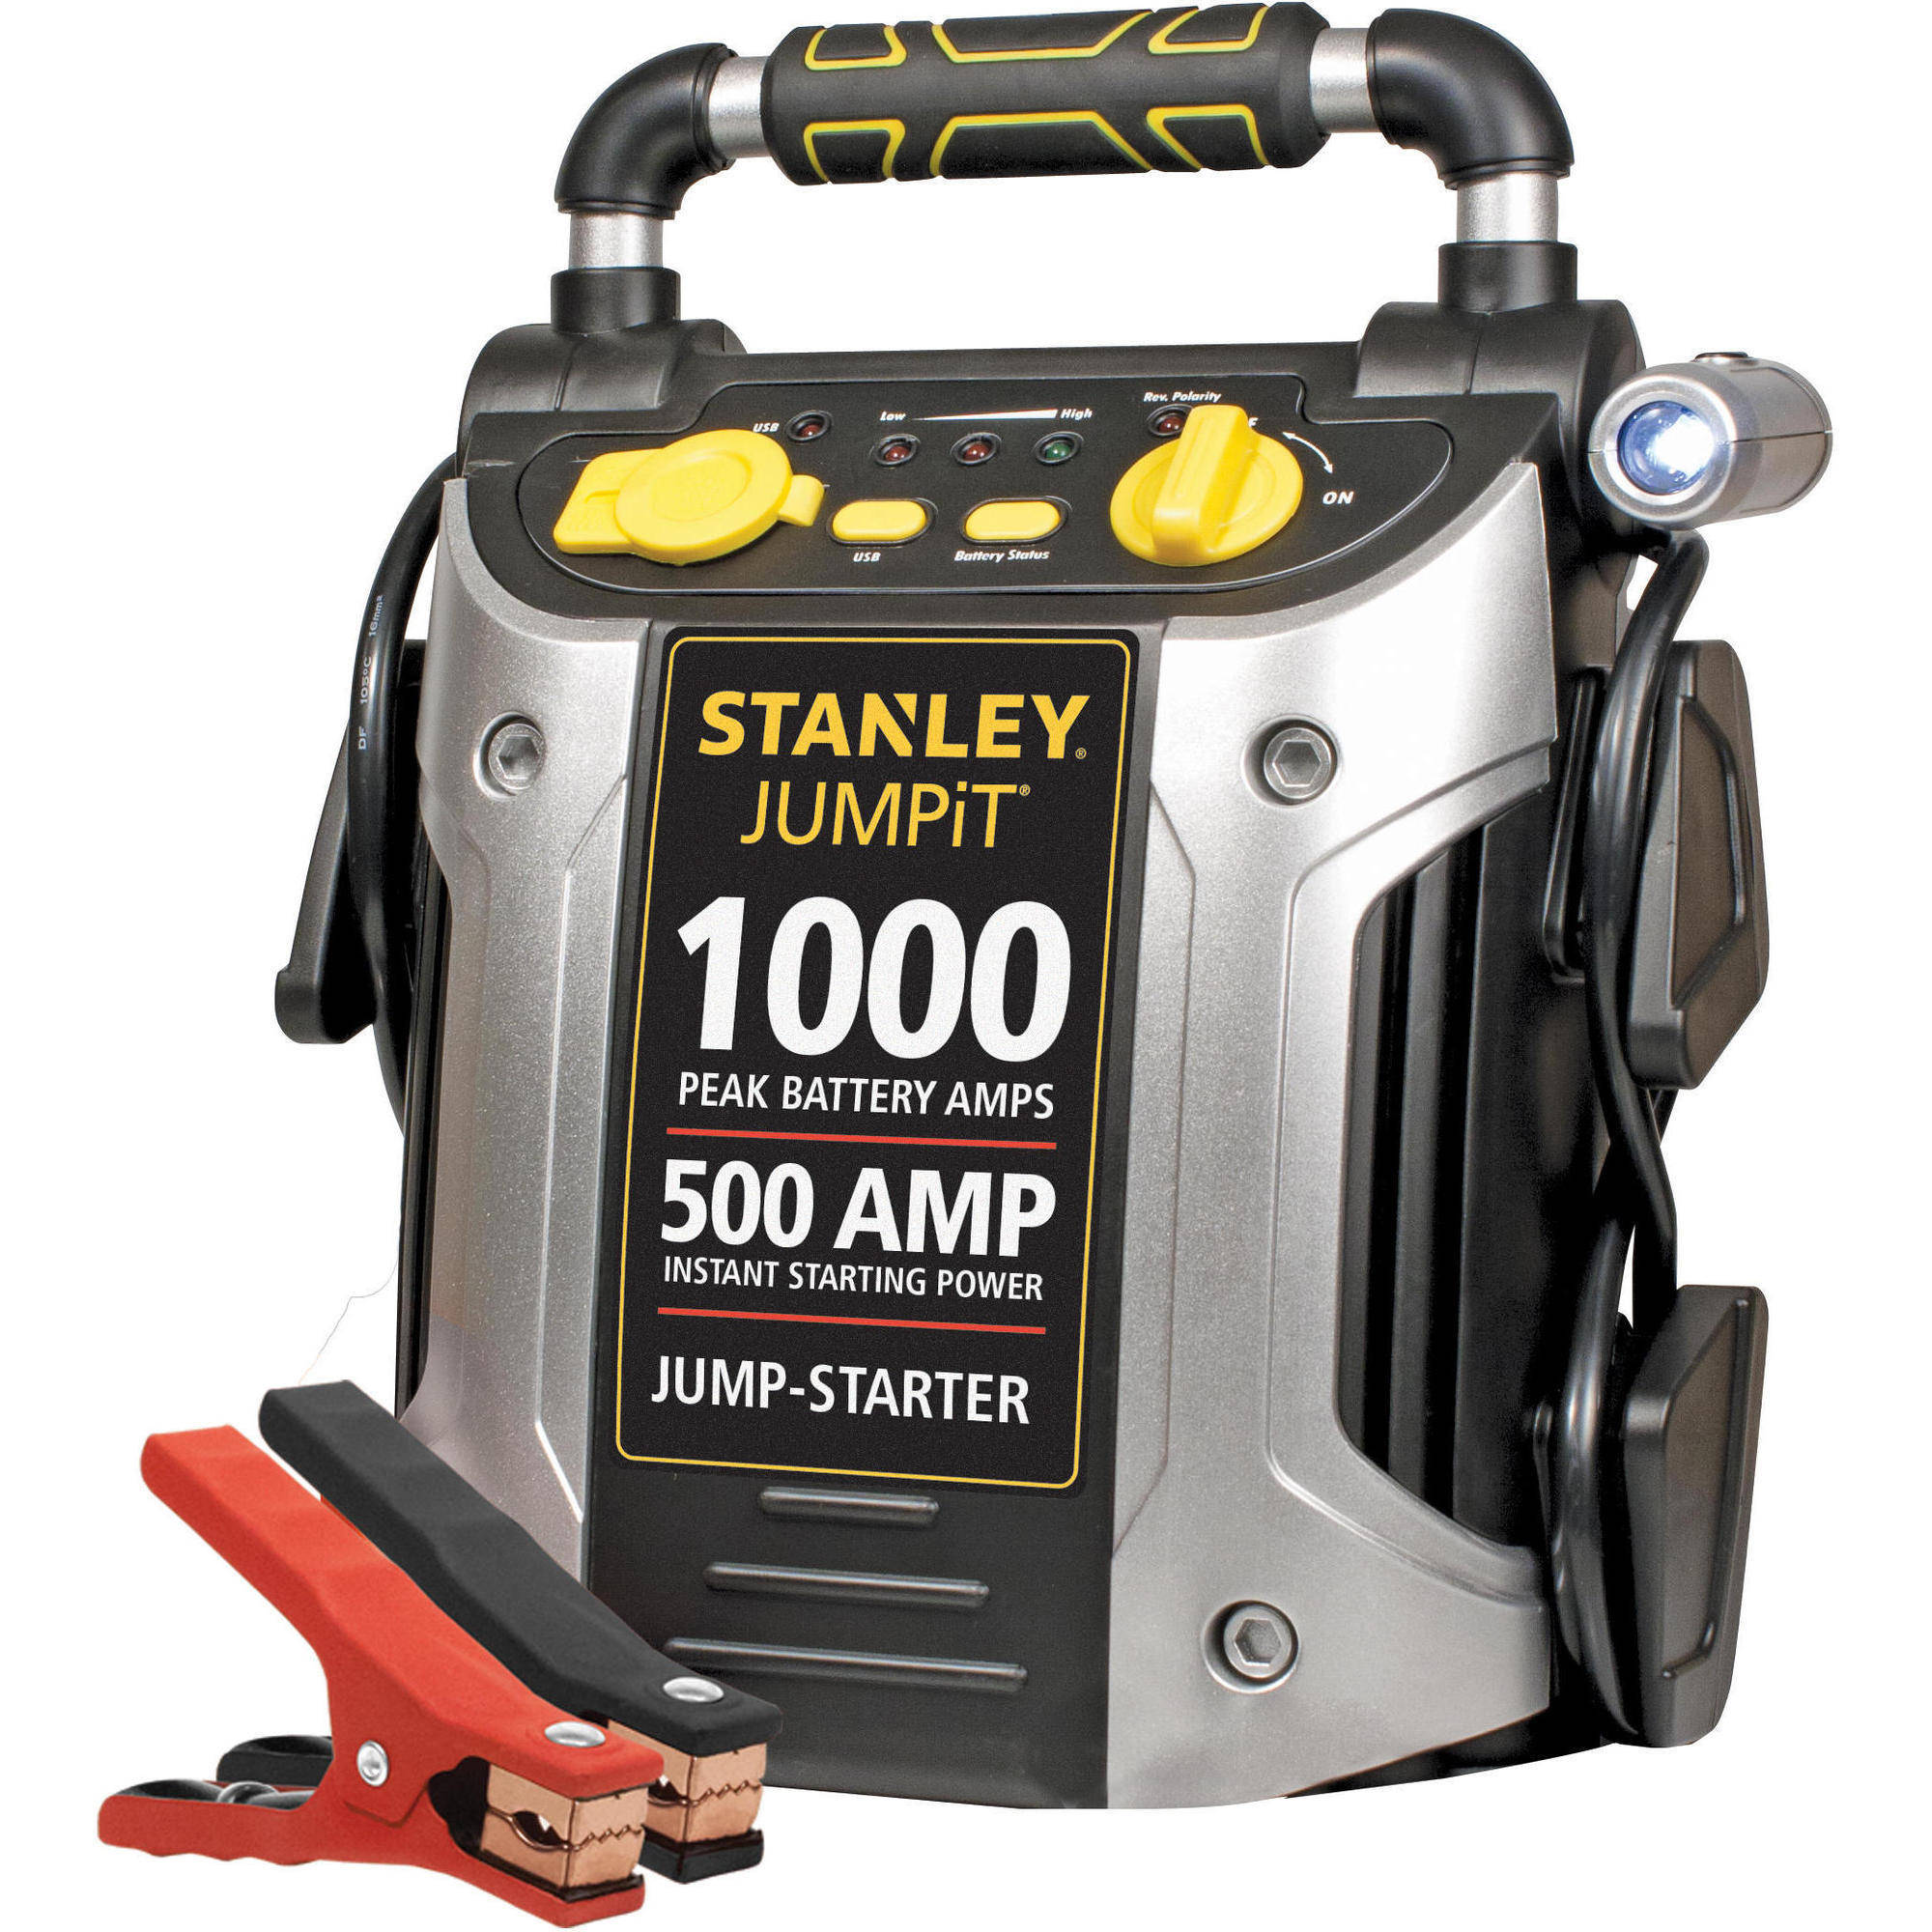 STANLEY 1000/500 Amp 12V Jump Starter with LED Light and USB (J509)